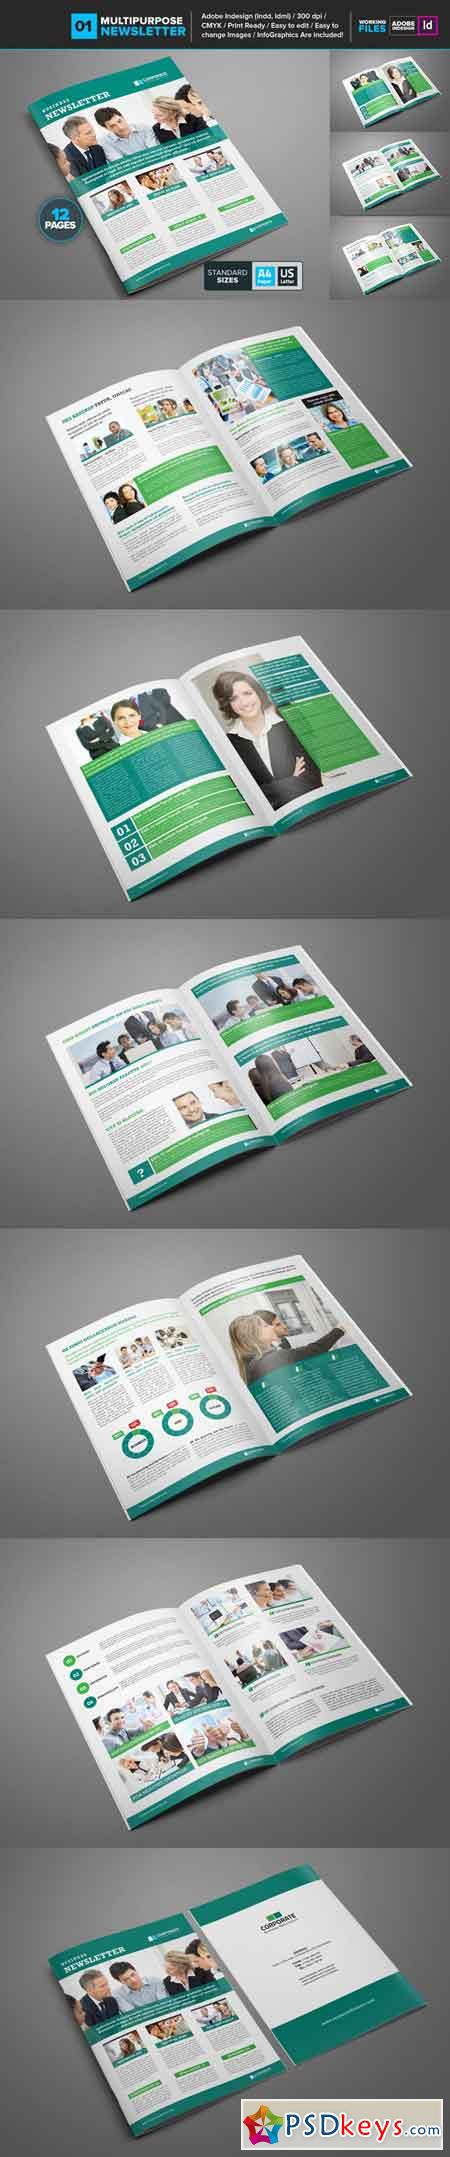 Multipurpose Newsletter Template 01 681508